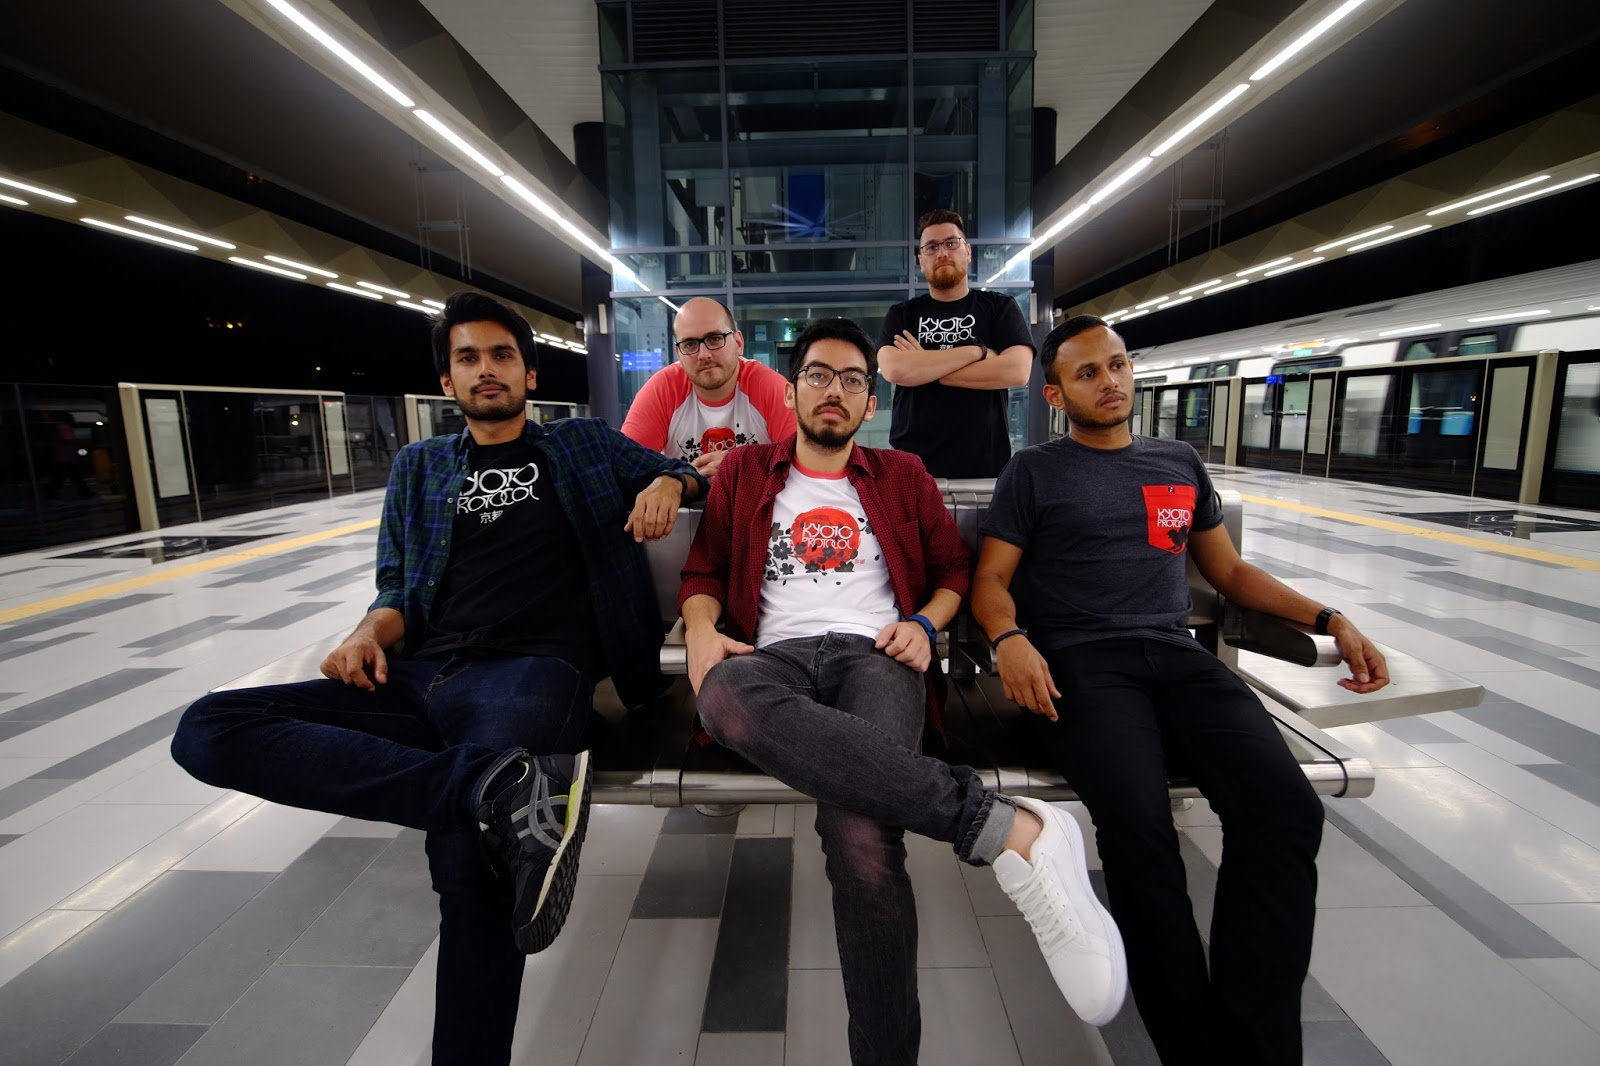 Kyoto Protocol's new music video reflects their hardships